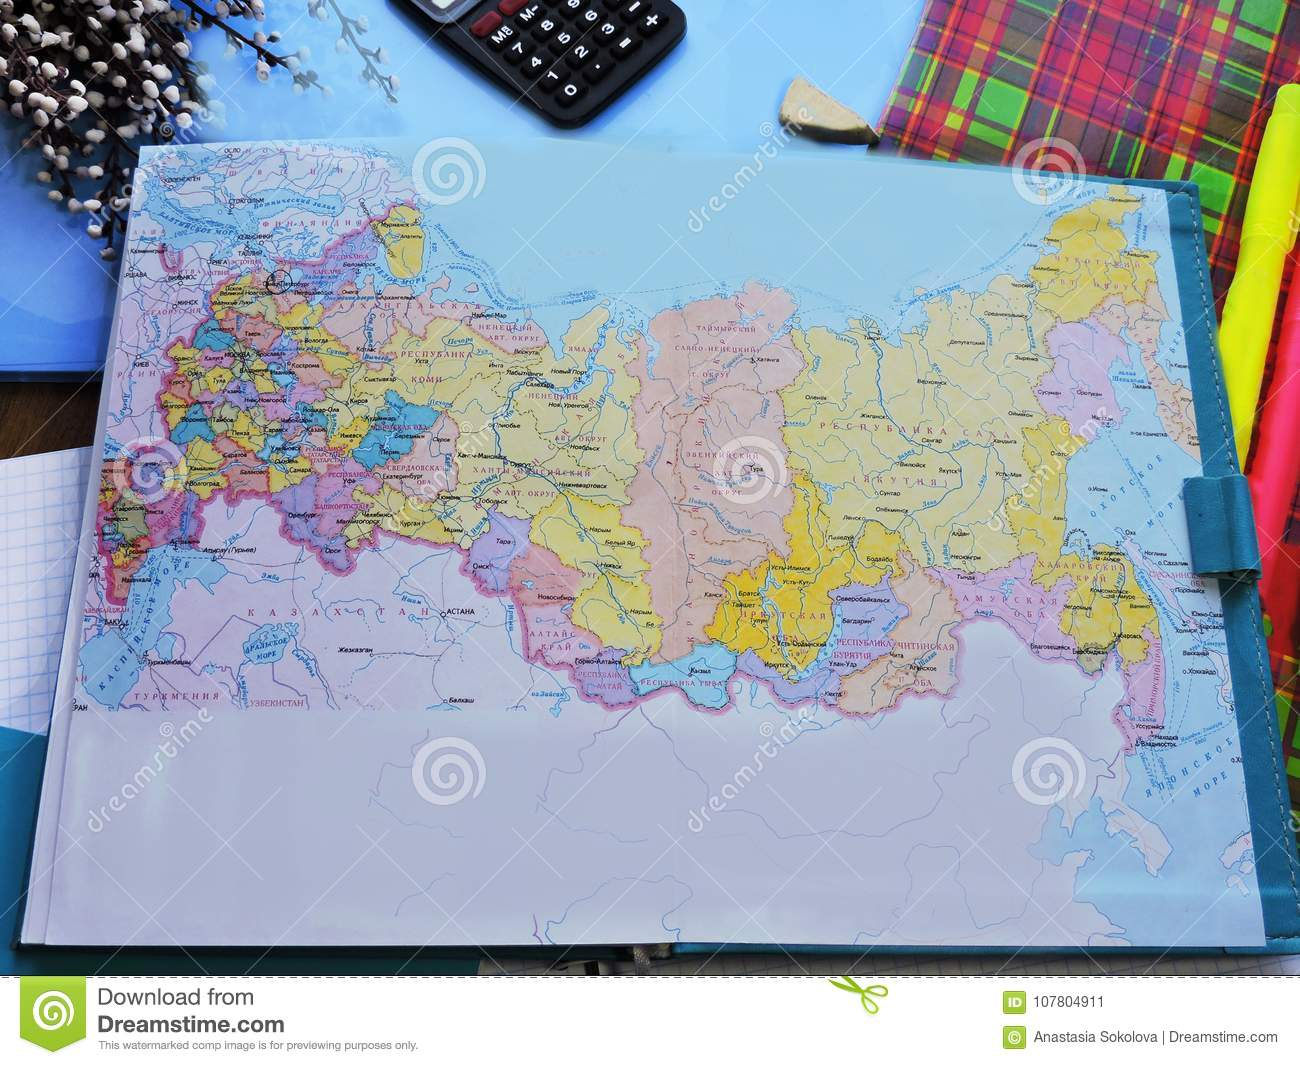 World Map On The Table Of Travelers Stock Image - Image of ... on nautical map table, materia table, people table, diy jigsaw puzzle table, map legend table, map coffee table, world water table, old map on table, games table, judson map cocktail table, atlas coffee table, community map table, old world trunk coffee table, green table, antique map table, decoupage table, vintage map table, paris eiffel tower table, blue table, war map table,